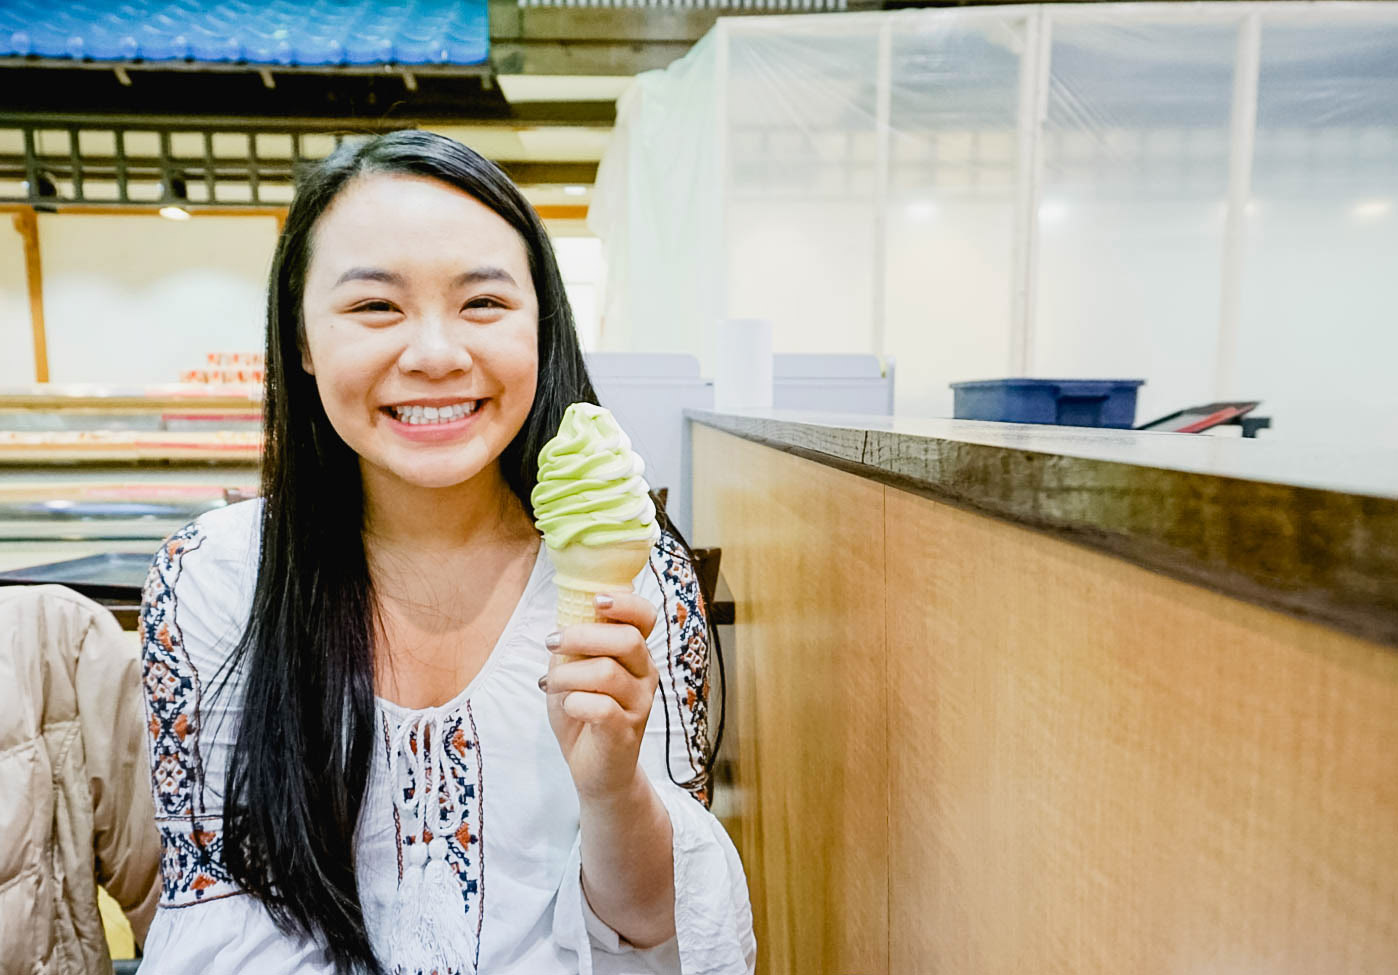 green tea ice cream in Chicago